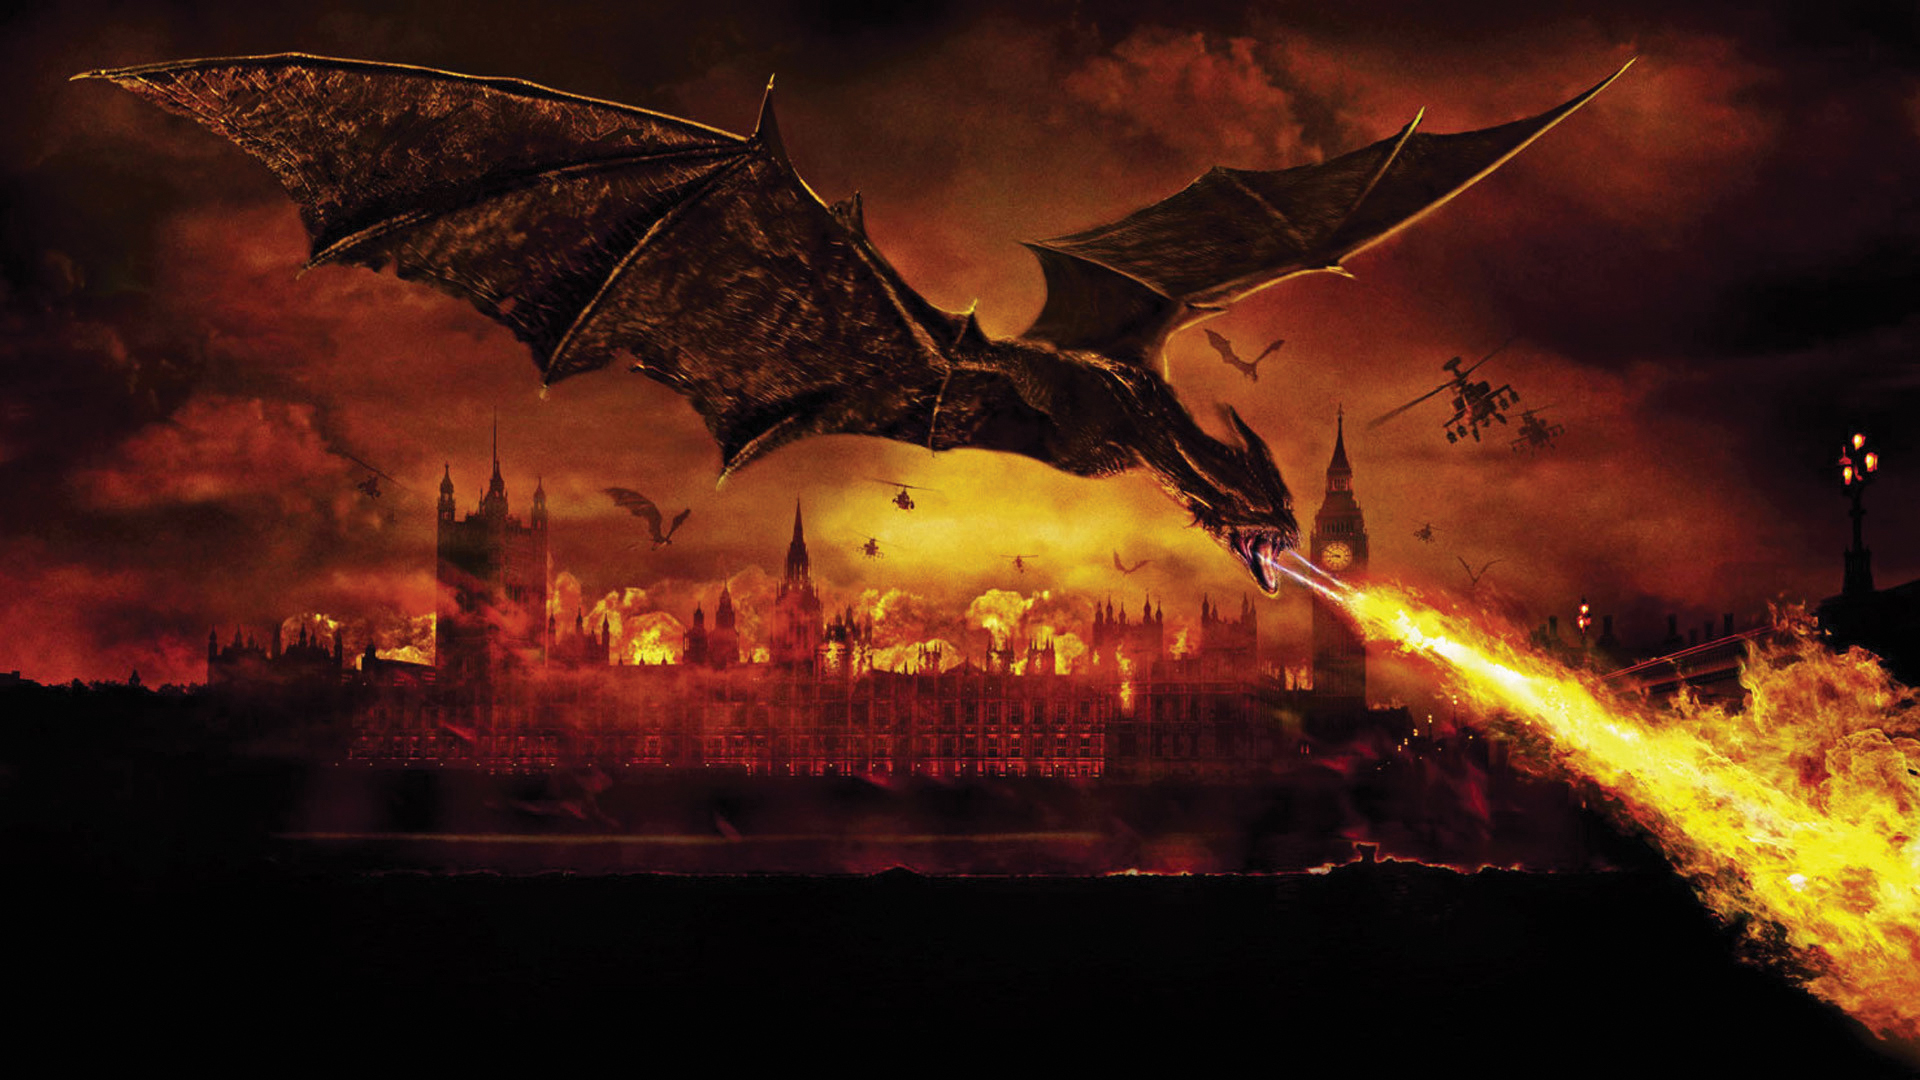 reign of fire dragon fire helicopter london movies movie